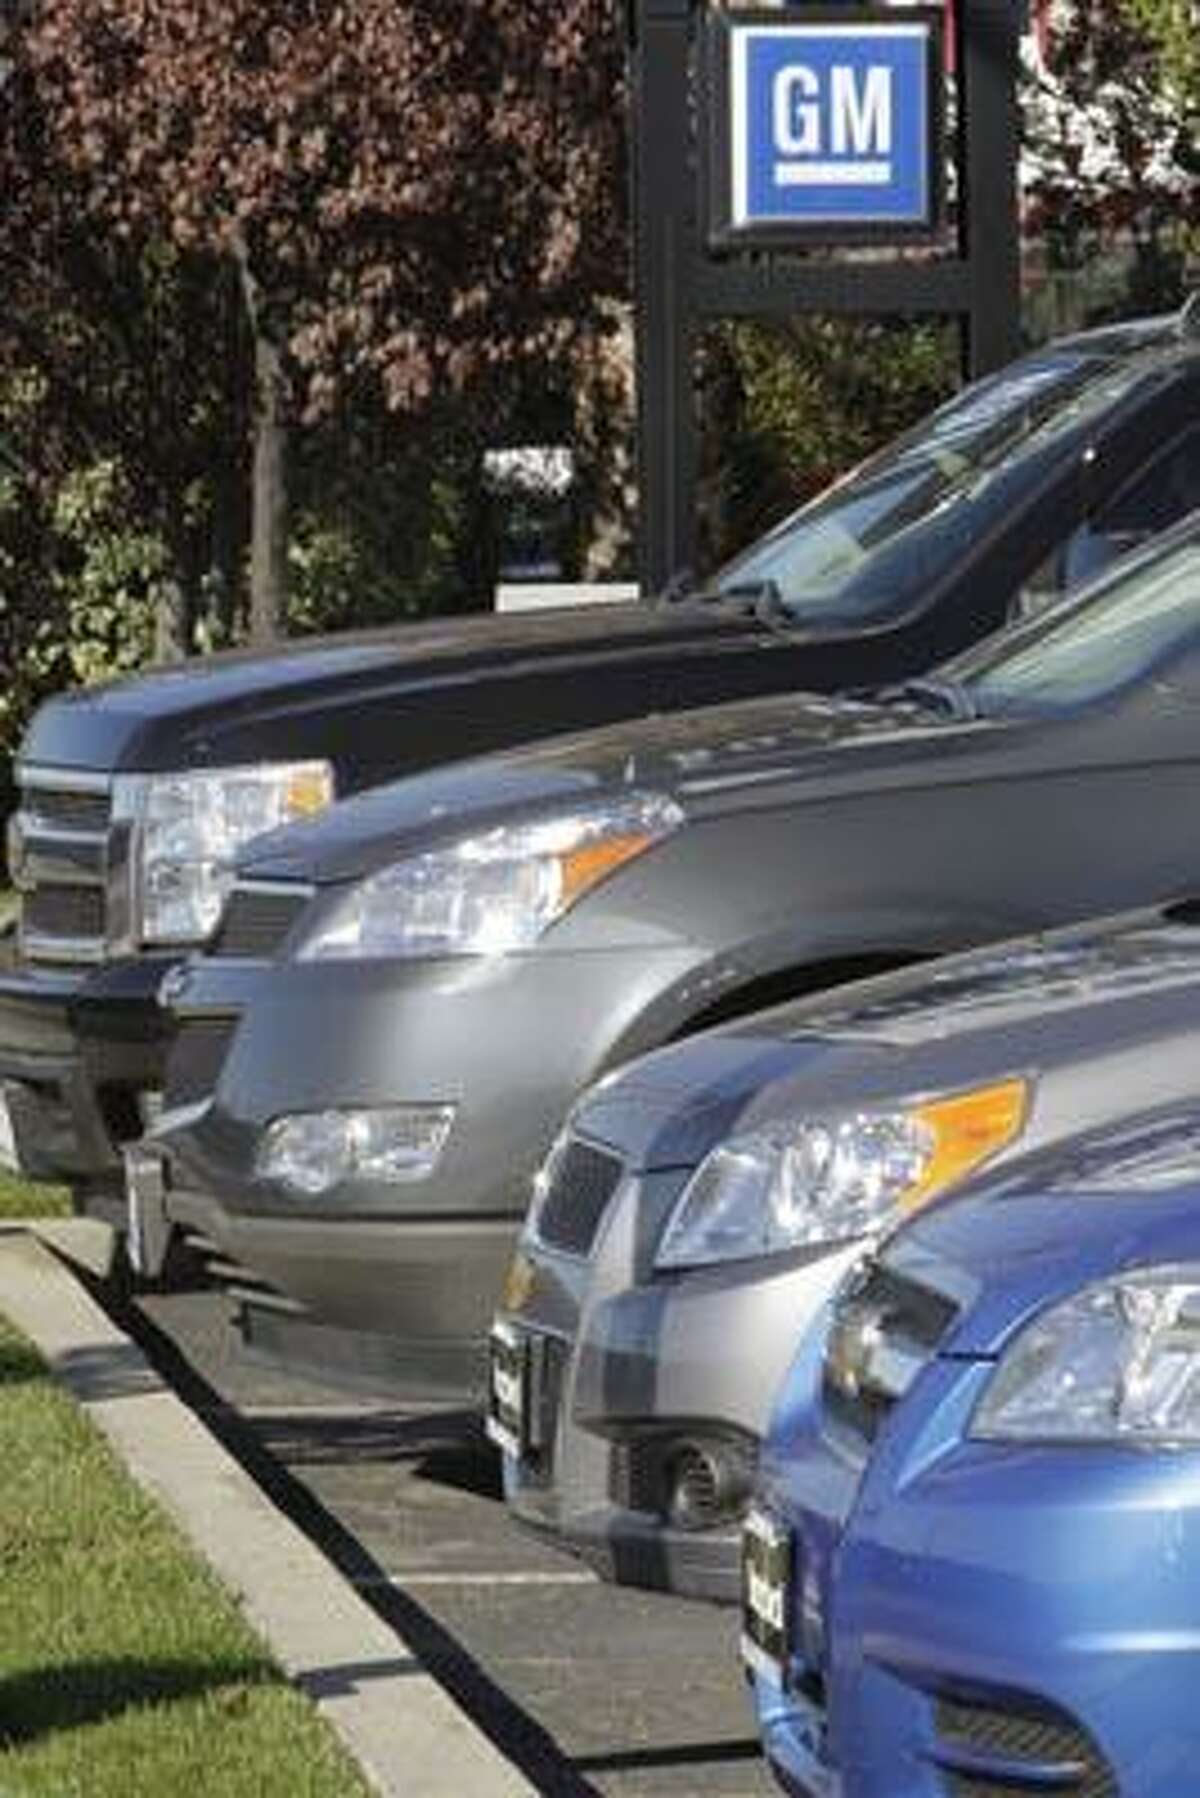 In this Nov. 29, 2010 photo, General Motors vehicles sit for sale at a dealership in Redwood City, Calif. General Motors says sales of cars and trucks in the U.S. rose 6.3 percent last year as a strong line-up of new models helped the company make a comeback from its 2009 bankruptcy. GM says it sold 2.2 million cars and trucks, even though it got rid of four brands to focus on Chevrolet, Buick, Cadillac and GMC. (AP Photo/Paul Sakuma)